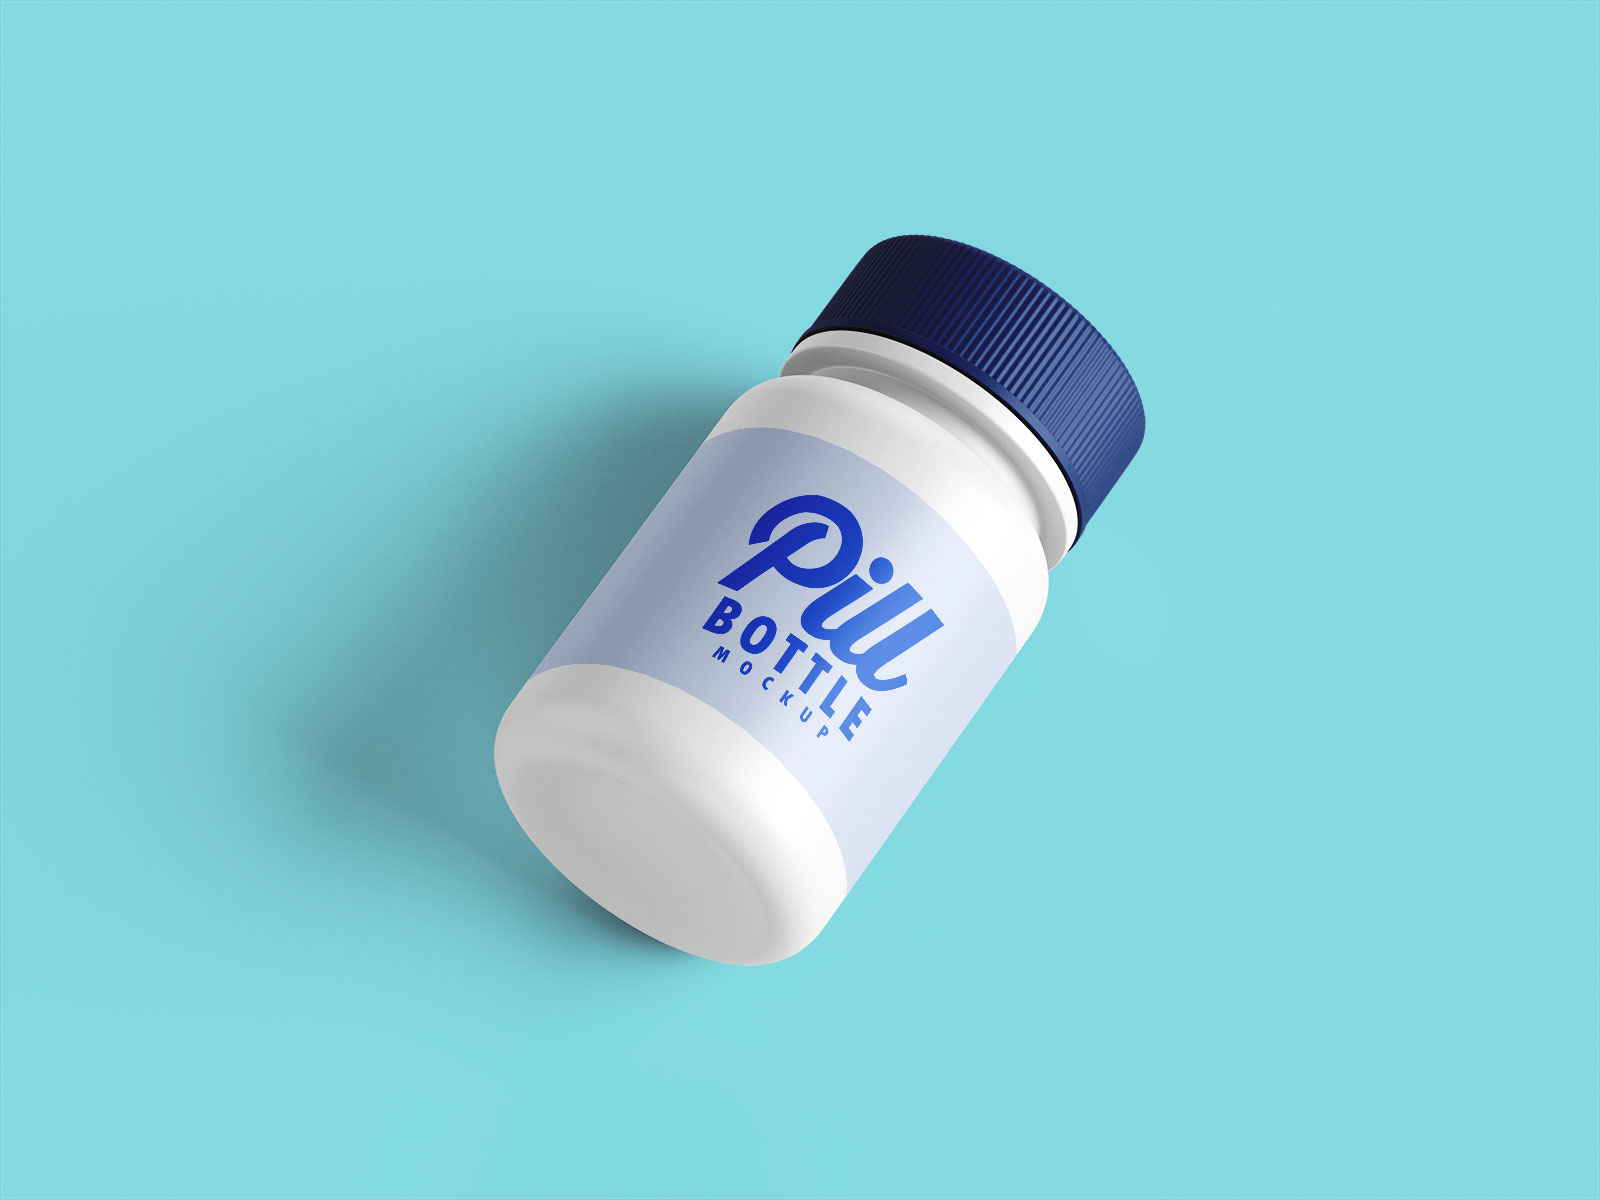 Free-Medicine-Pill-Bottle-Mockup-PSD-Set-2